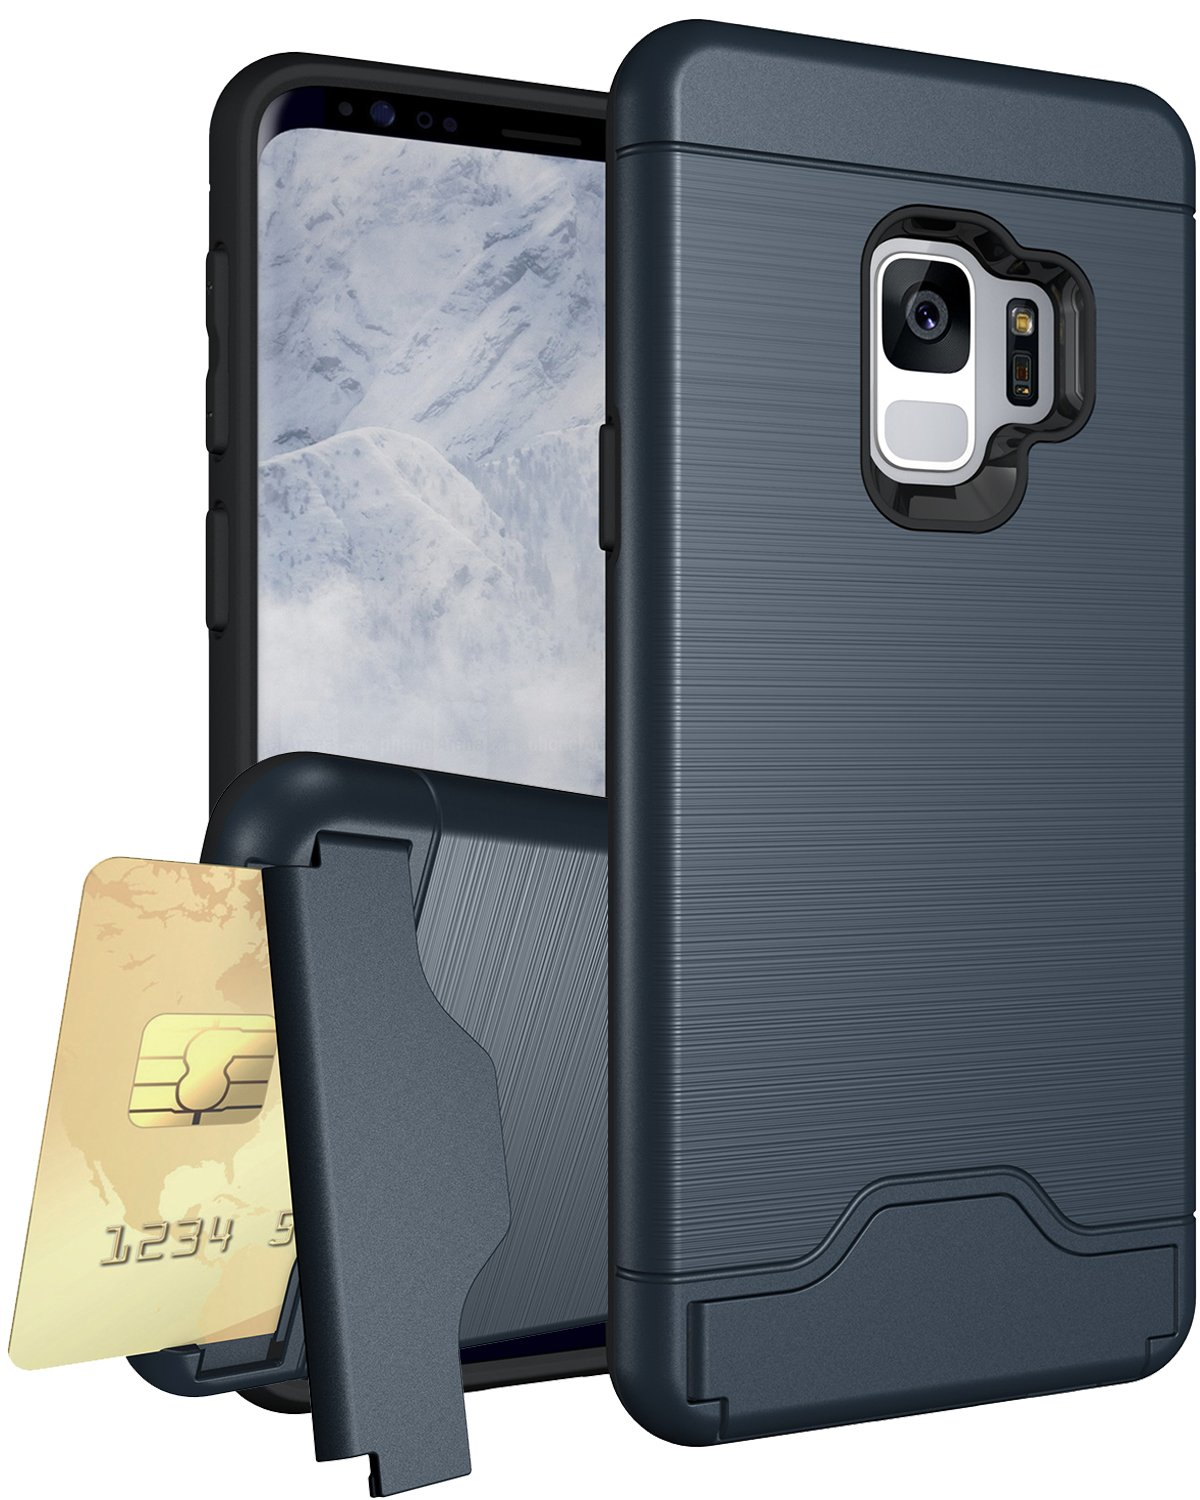 Galaxy S9 Case, XRPow Samsung S9 Credit Card Slots Holder Hybrid Bumper Armor Dual Layer Shockproof Protective Case Cover Navy Blue